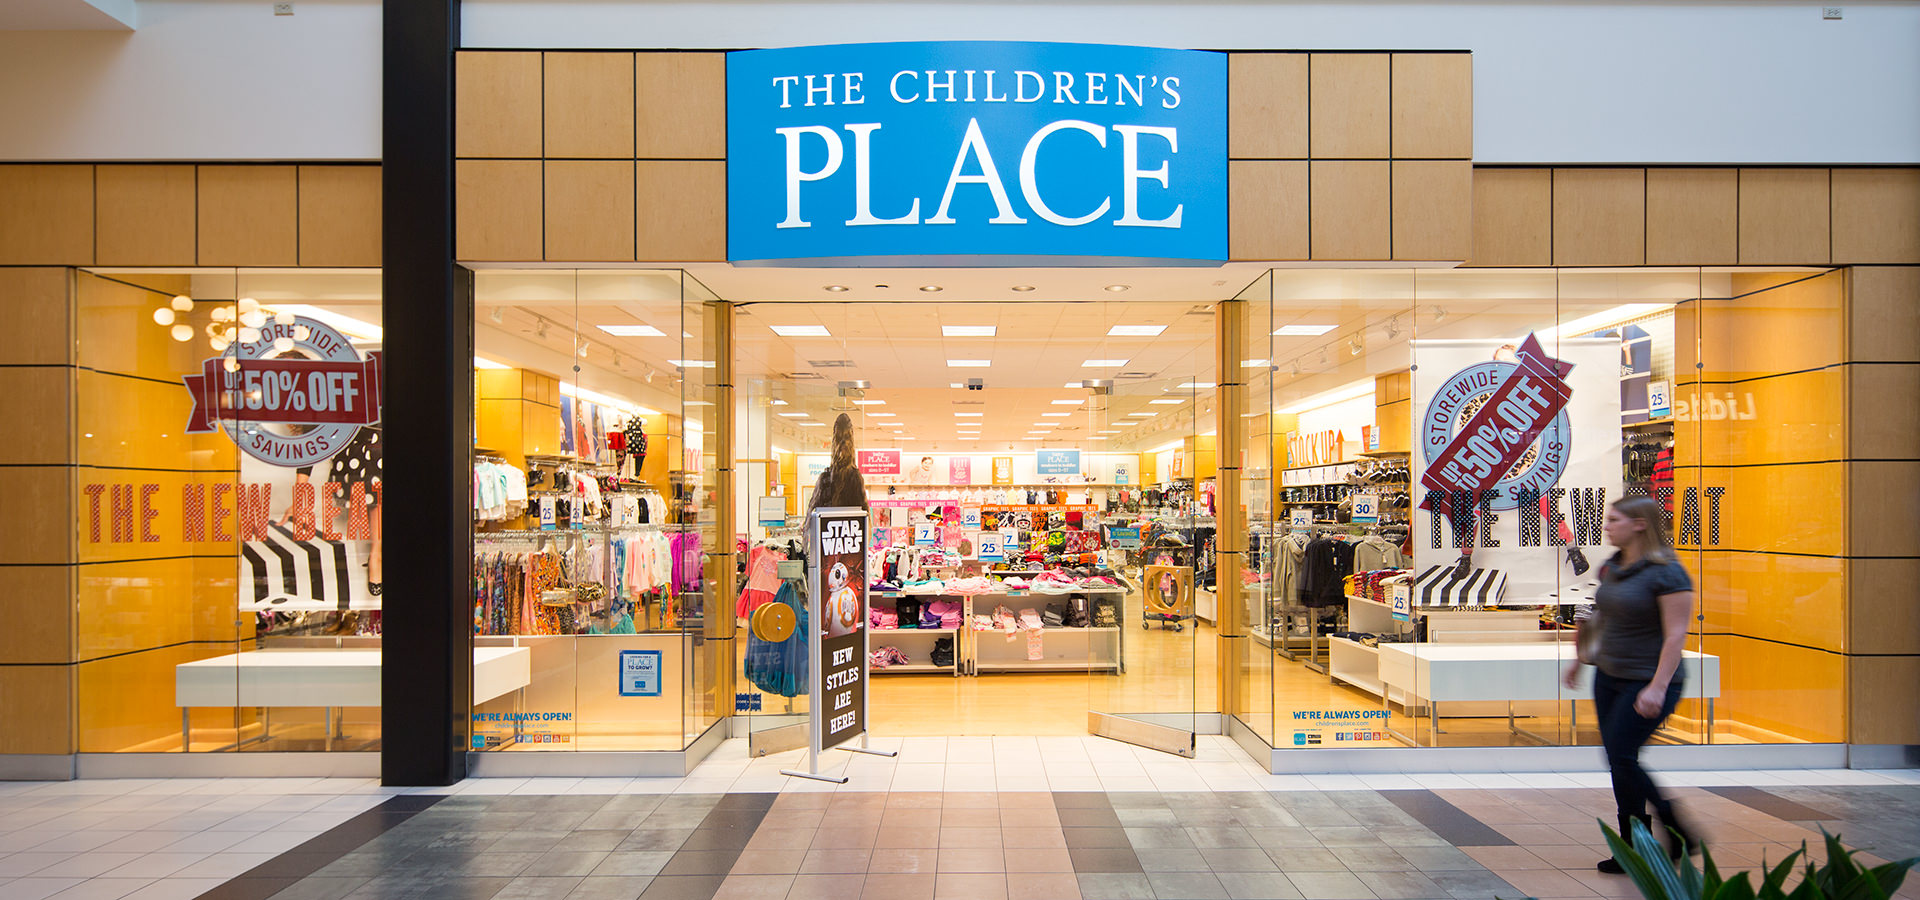 The Children's Place Outfitting kids since ! Our place is your place – join the fun with #mystylePLACE. Shop All Back-to-School Styles ⬇️: replieslieu.ml